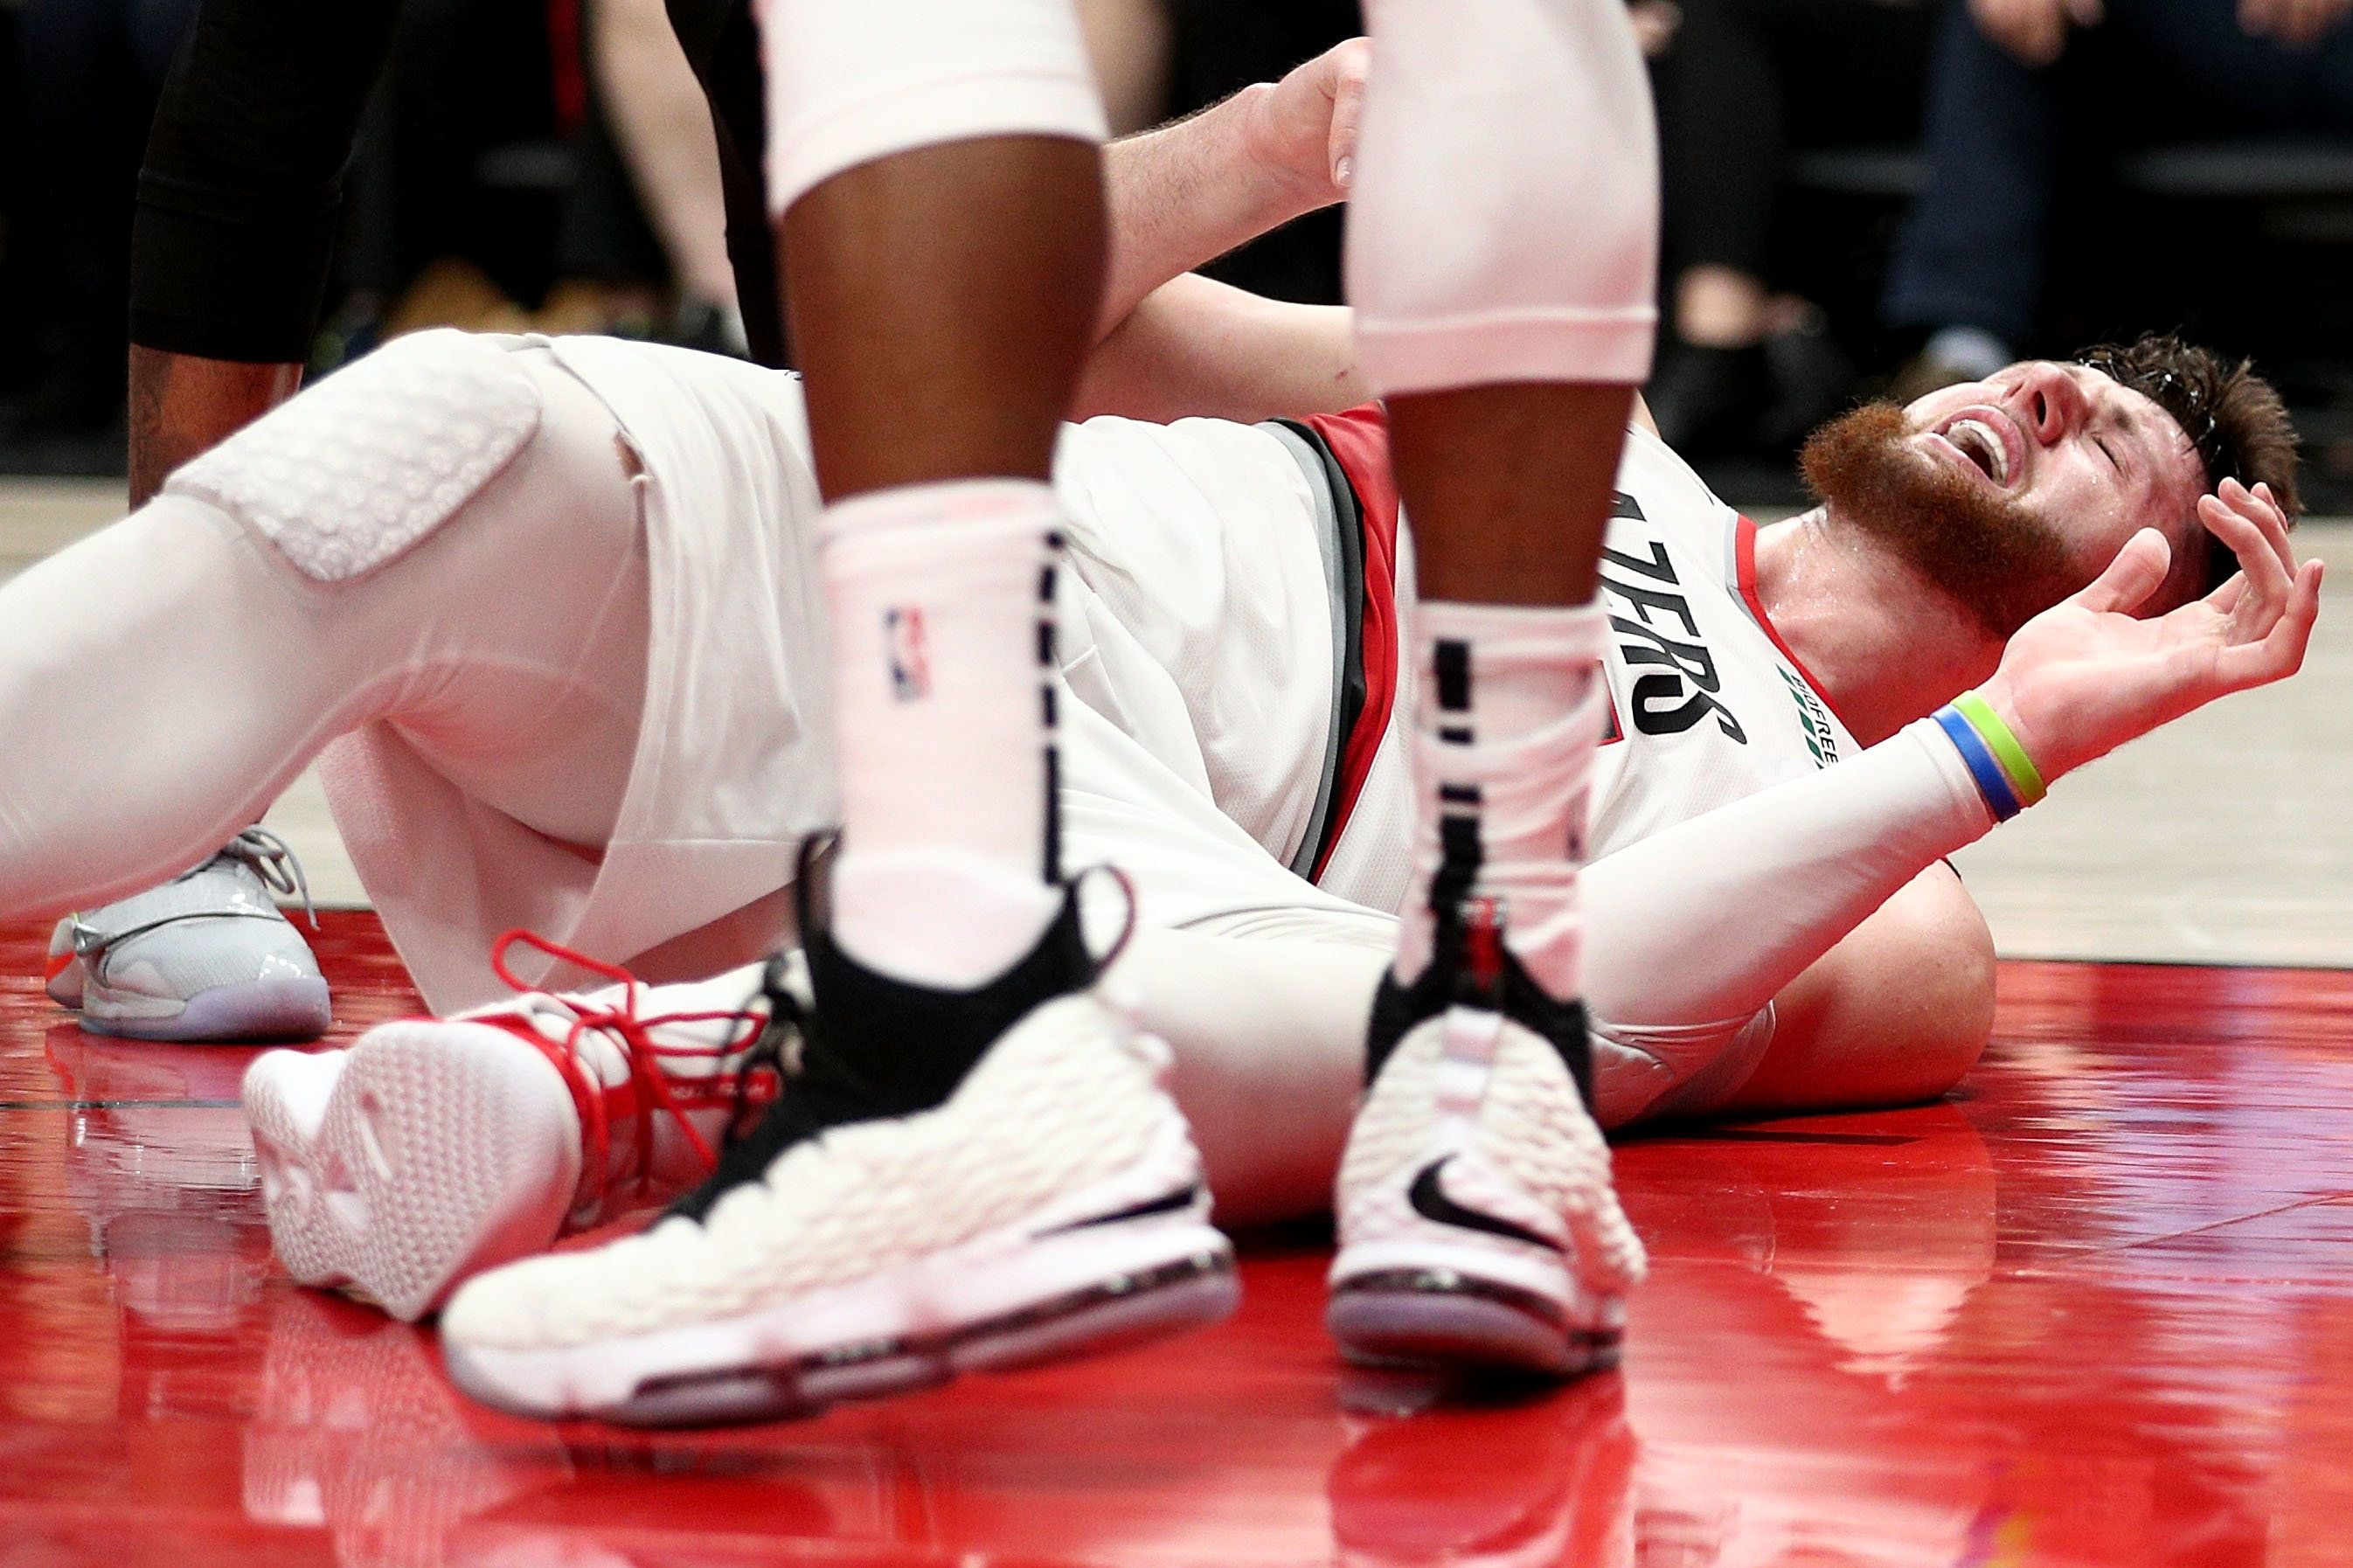 PORTLAND, OR - MARCH 25:  Jusuf Nurkic #27 of the Portland Trail Blazers reacts after suffering an apparent broken leg against the Brooklyn Nets in double overtime during their game at Moda Center on March 25, 2019 in Portland, Oregon. NOTE TO USER: User expressly acknowledges and agrees that, by downloading and or using this photograph, User is consenting to the terms and conditions of the Getty Images License Agreement.  (Photo by Abbie Parr/Getty Images)